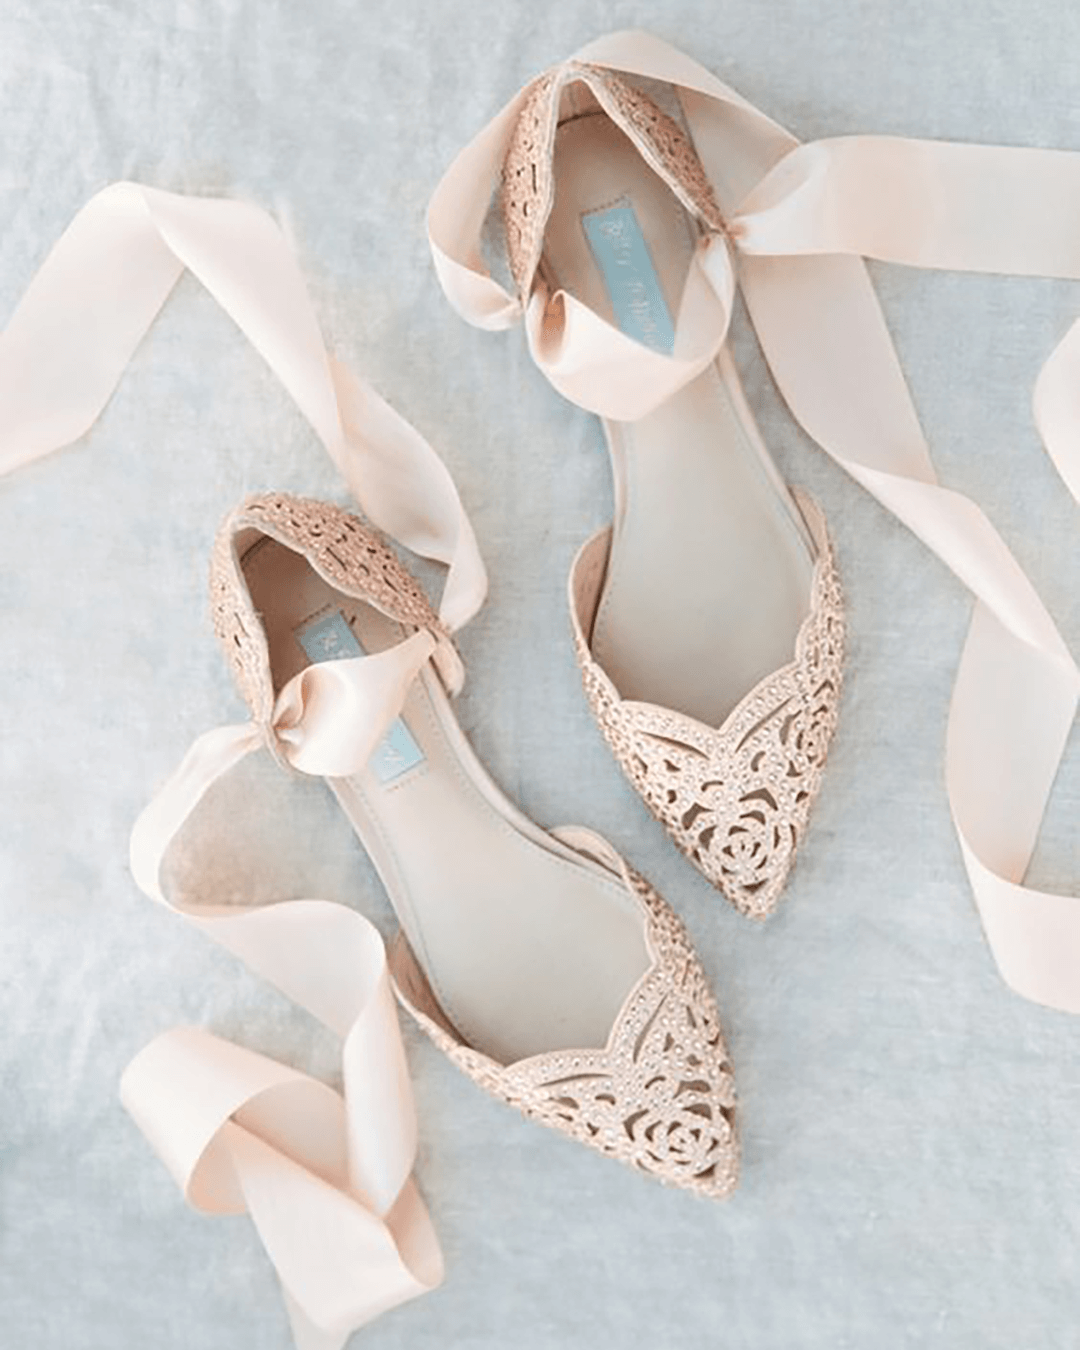 Comfortable wedding shoes by Dressy Group